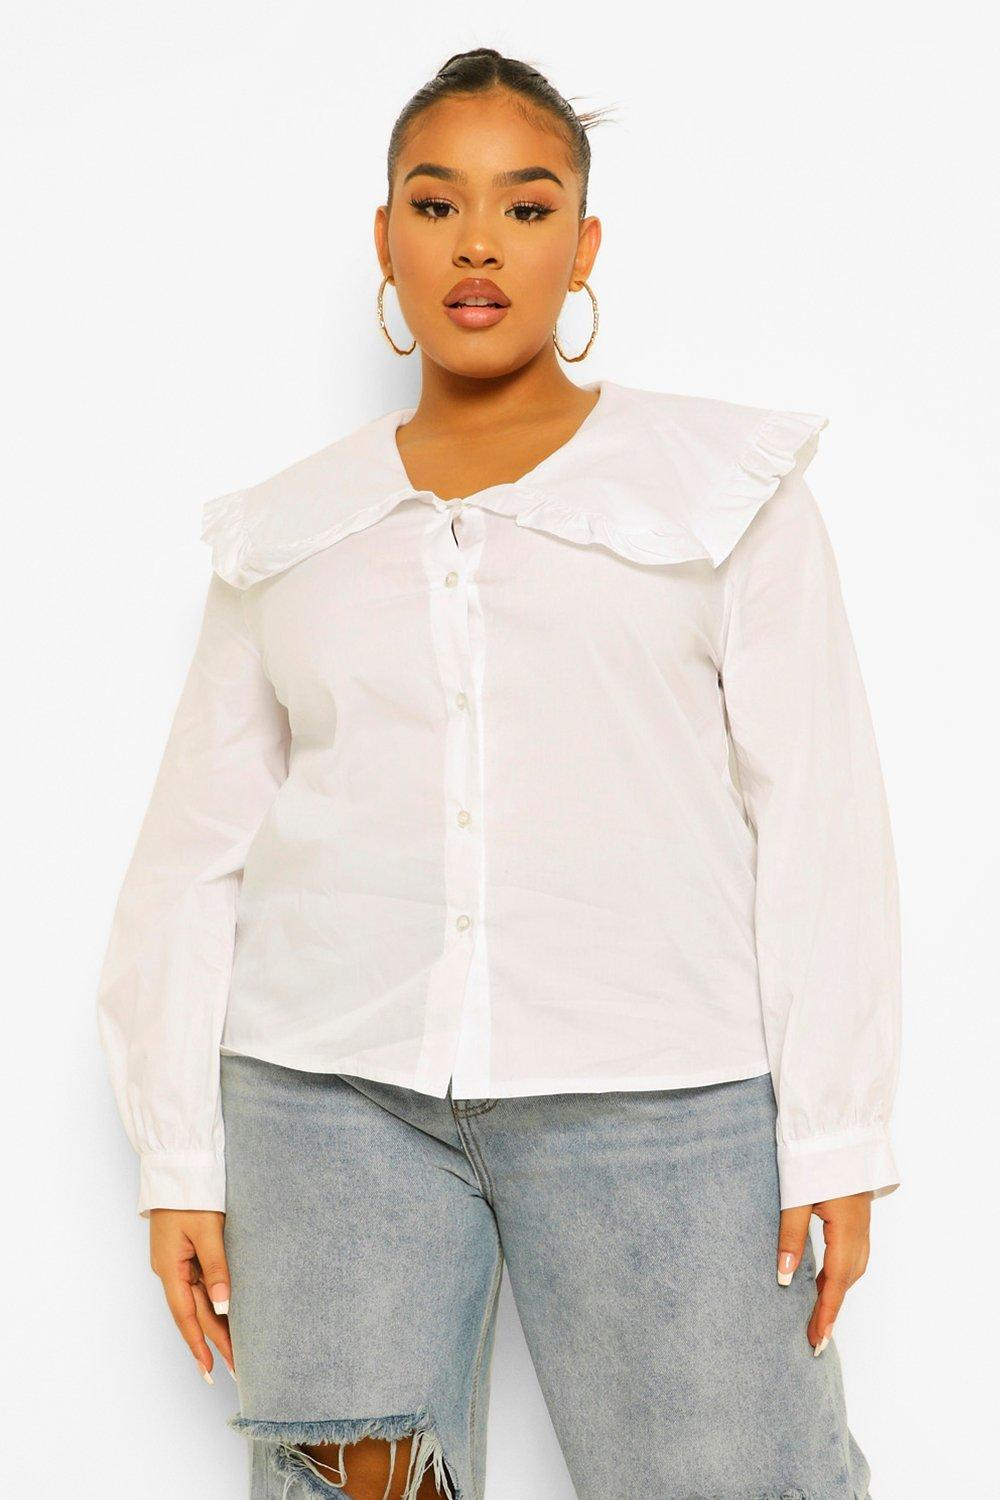 Edwardian Blouses |  Lace Blouses & Sweaters Womens Plus Peter Pan Collar Blouse - White - 16 $10.00 AT vintagedancer.com